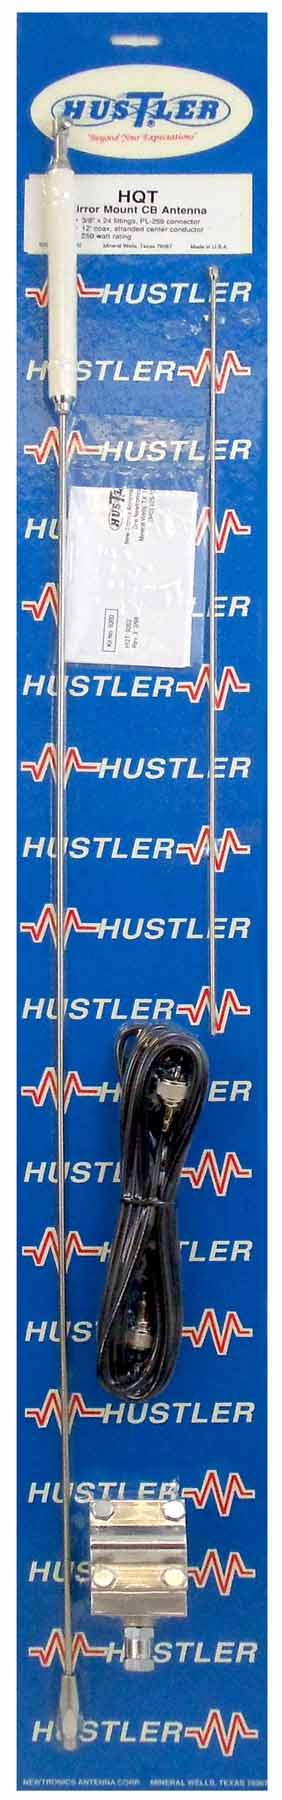 Hustler Products